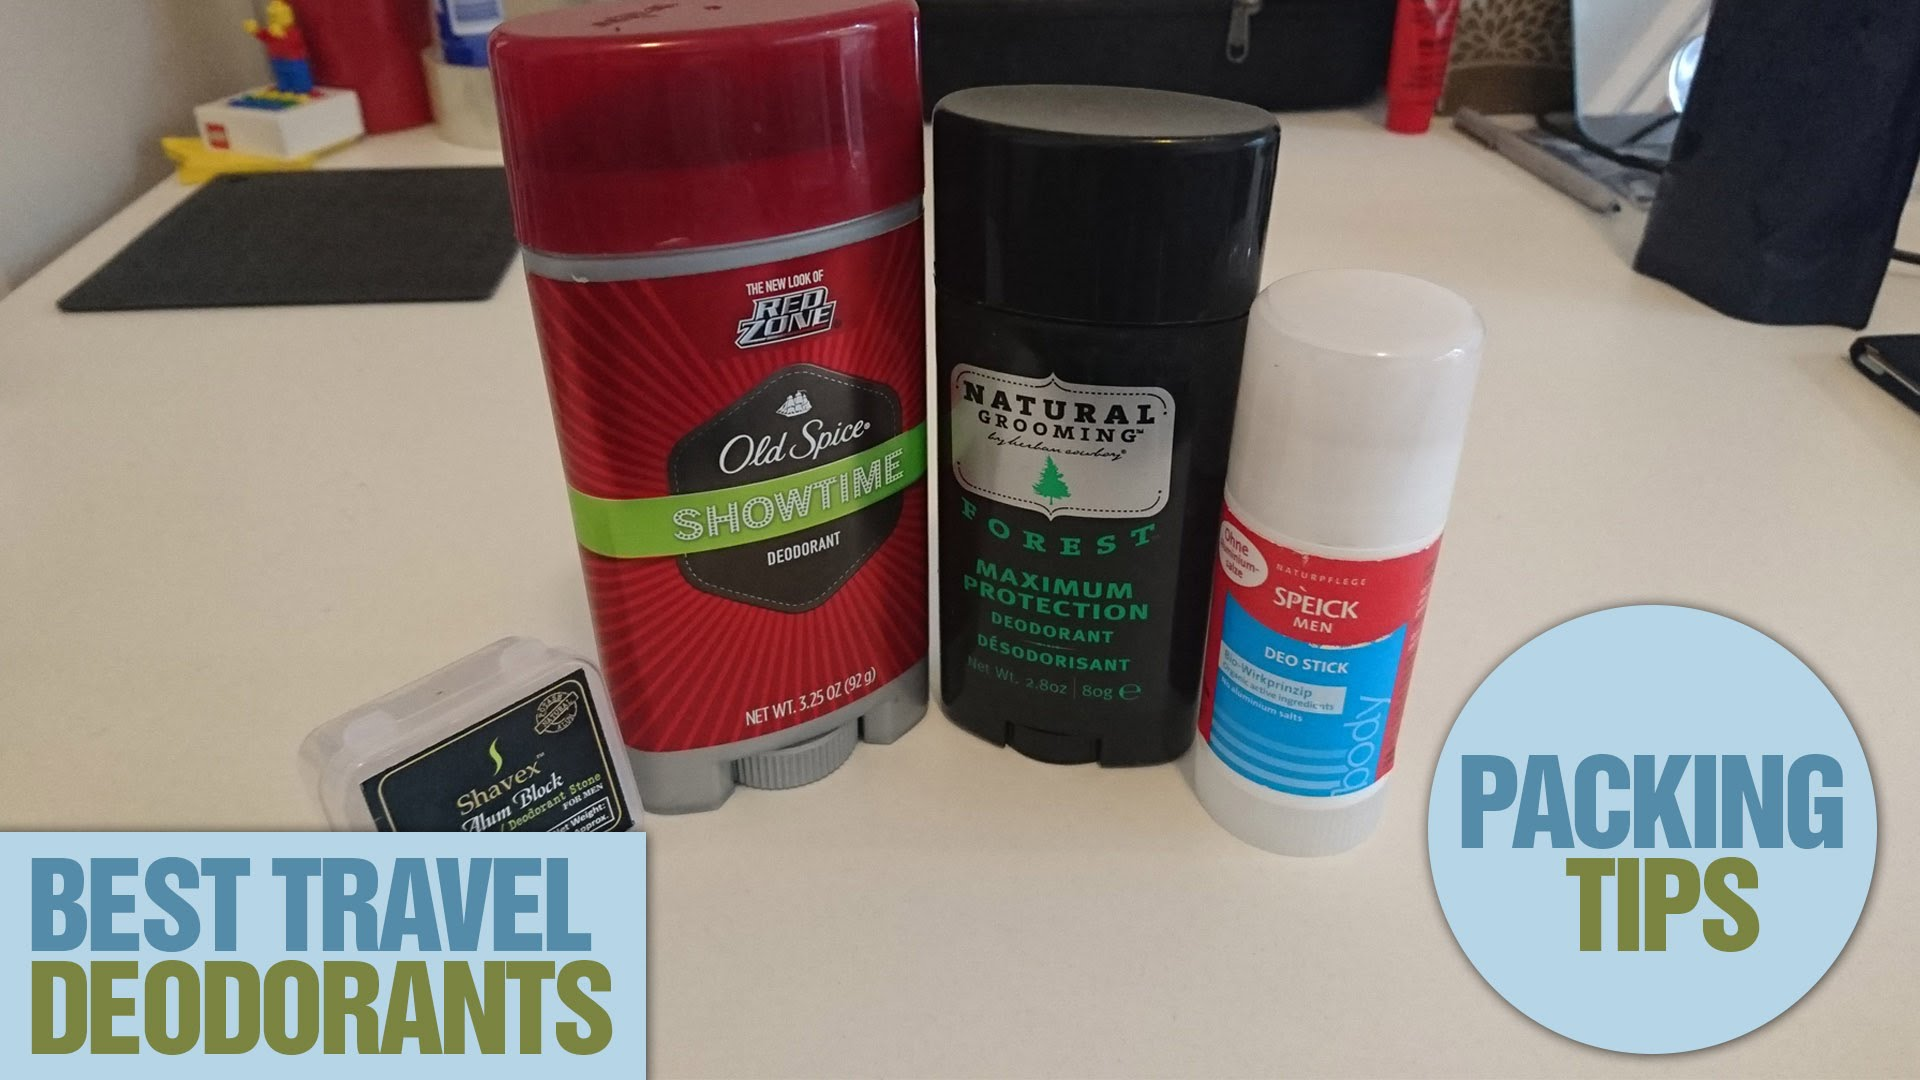 Packing-Tips-Best-Travel-Deodorant